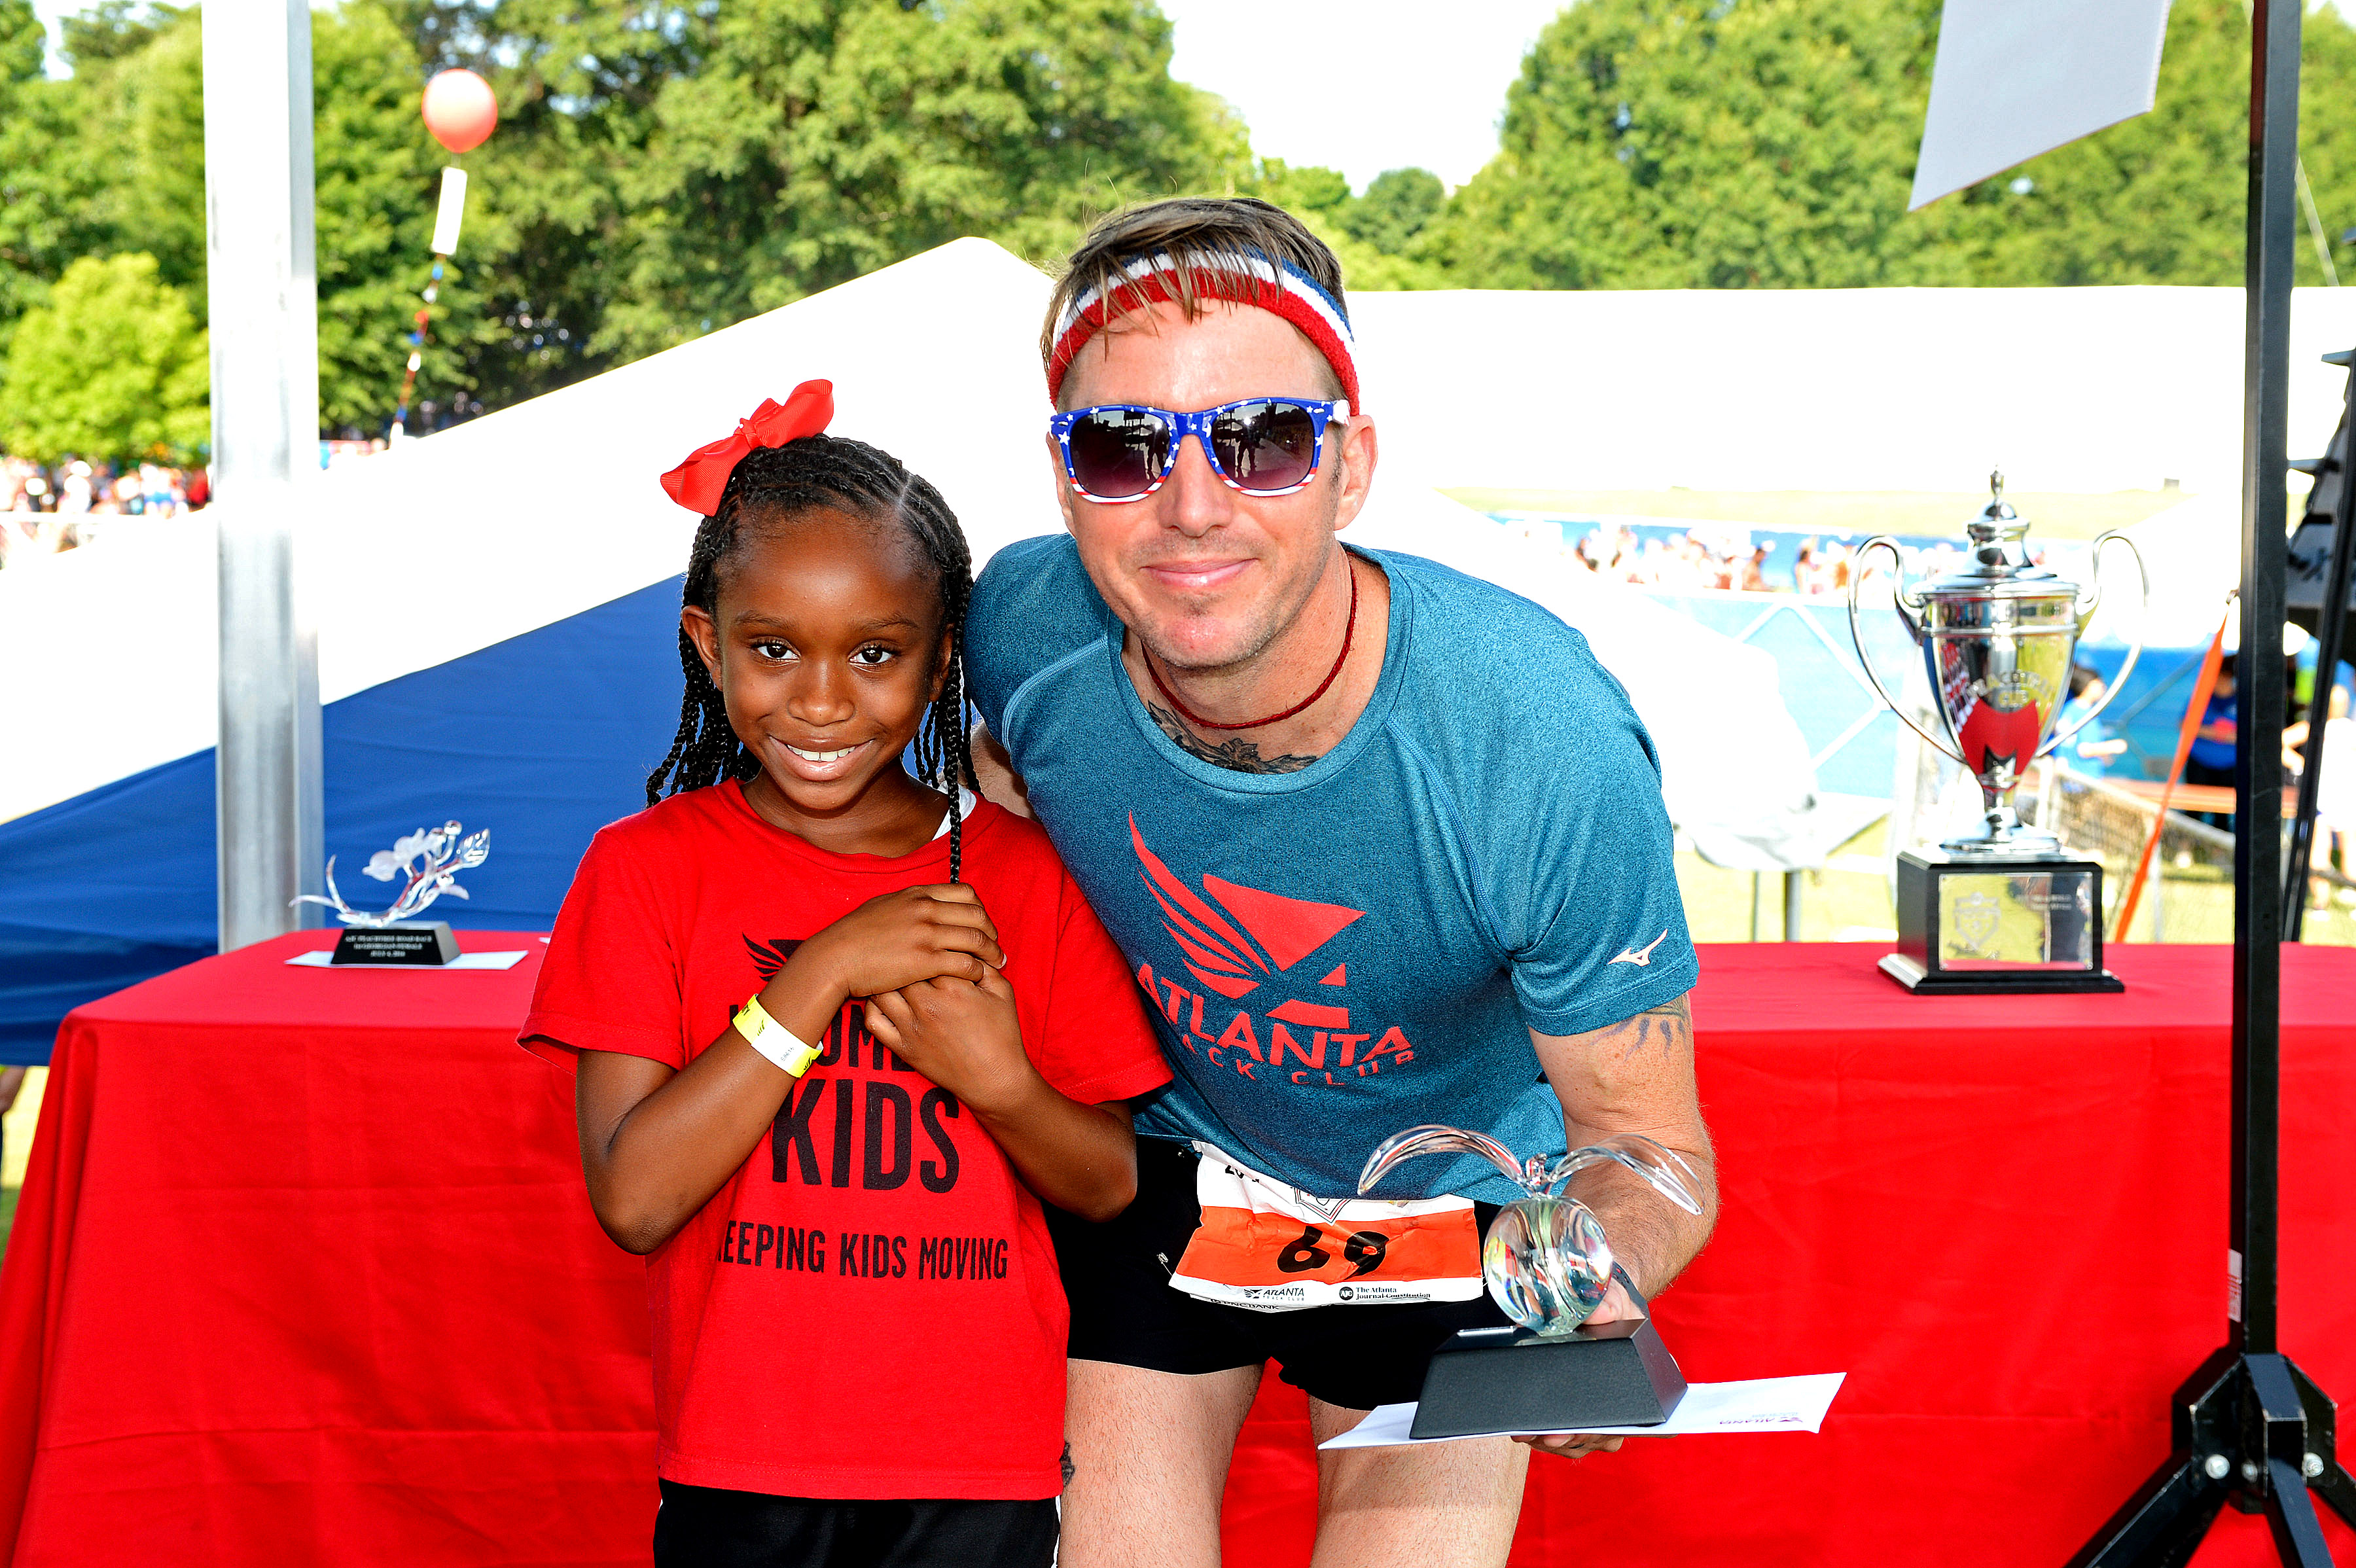 Peachtree road race results 2015 - Charity Entries Now Available For The 2017 Ajc Peachtree Road Race